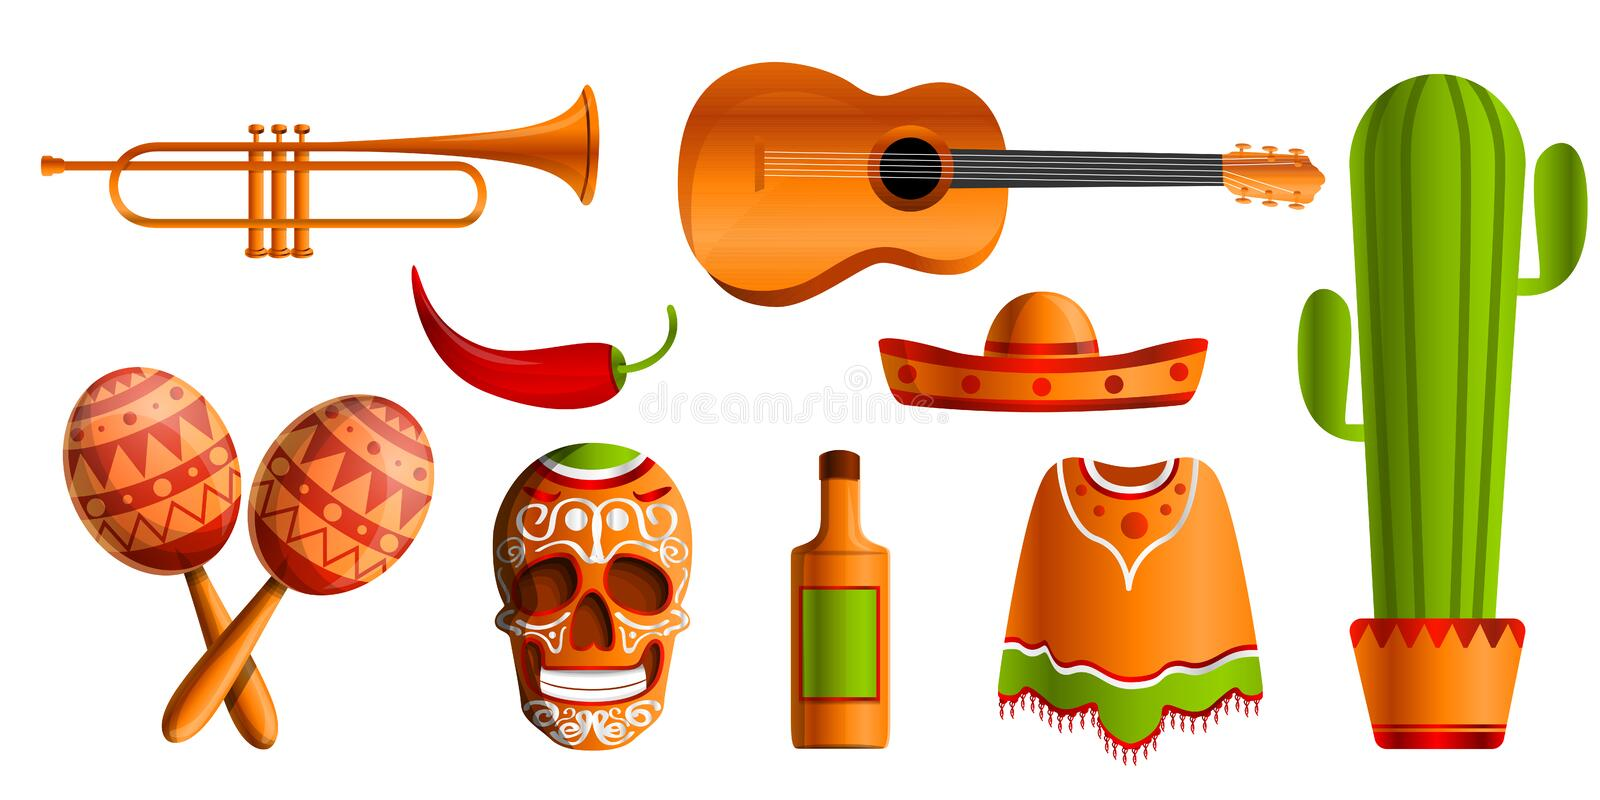 Mexican music icon set, cartoon style royalty free illustration